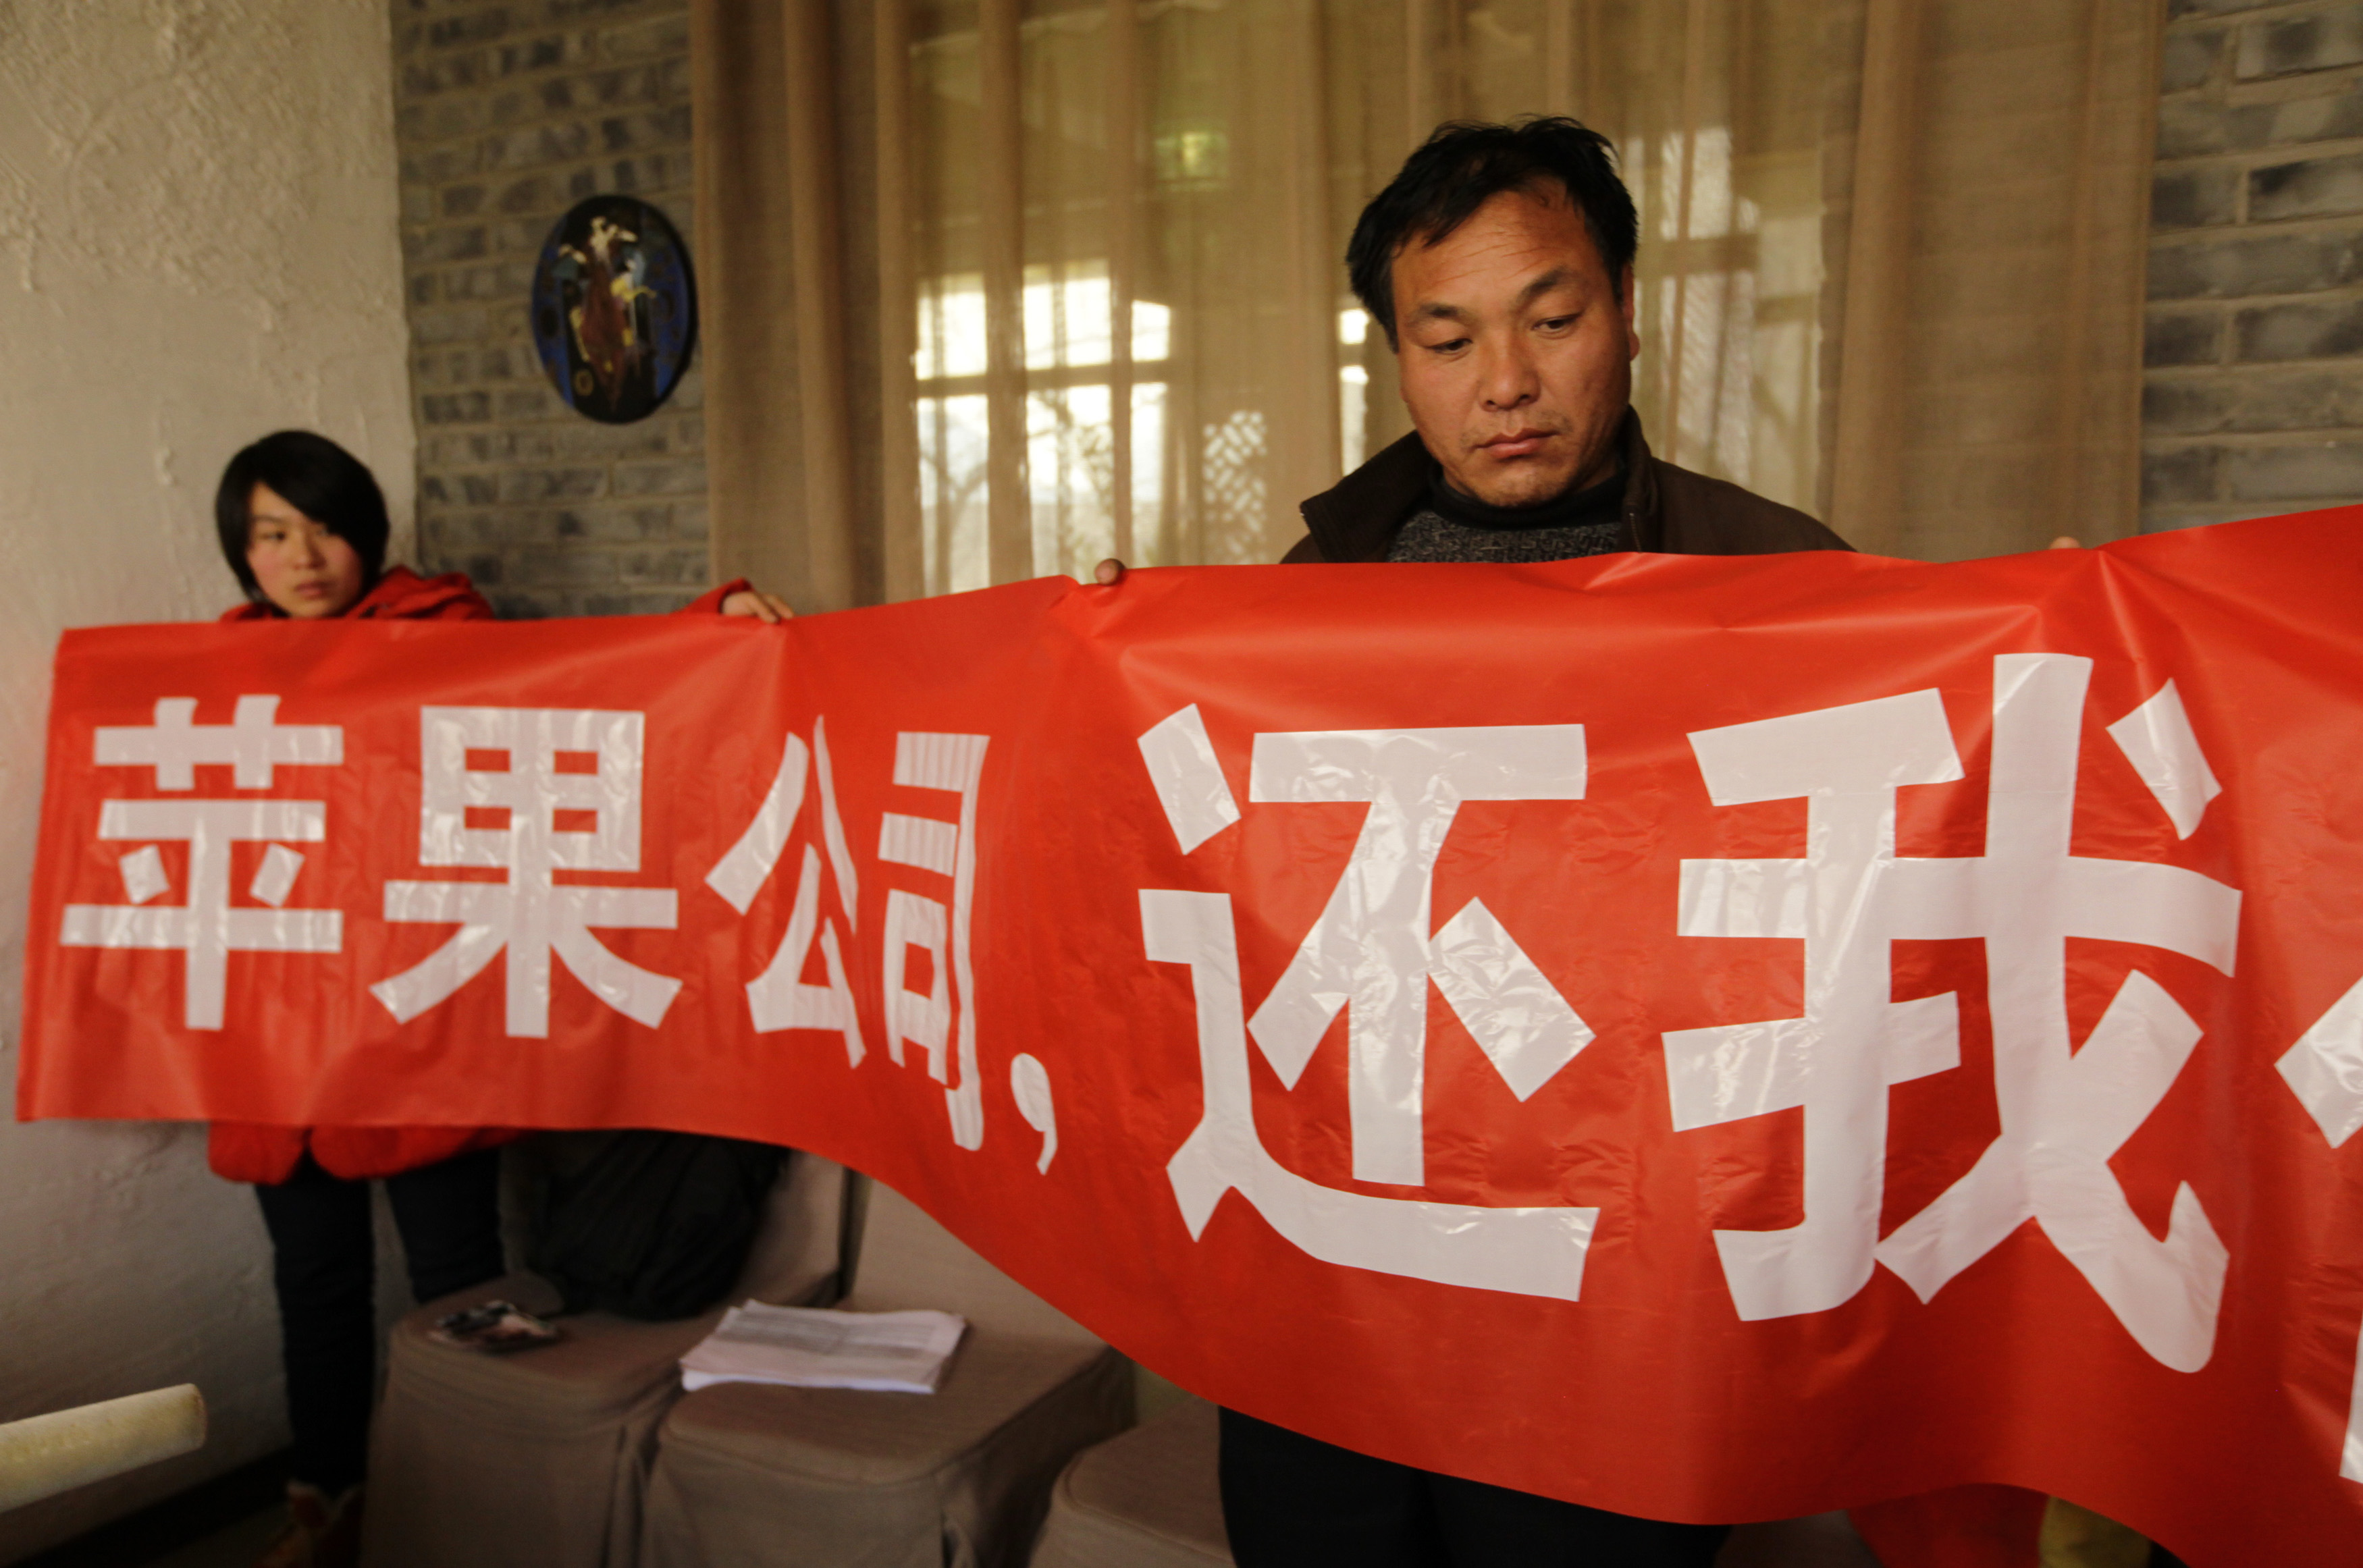 Shi Zengqiang, on the right, the father of a 15-year-old worker at Chinese manufacturing company Pegatron worker who died of pneumonia, holds a banner at a news conference in Beijing on December 16, 2013.